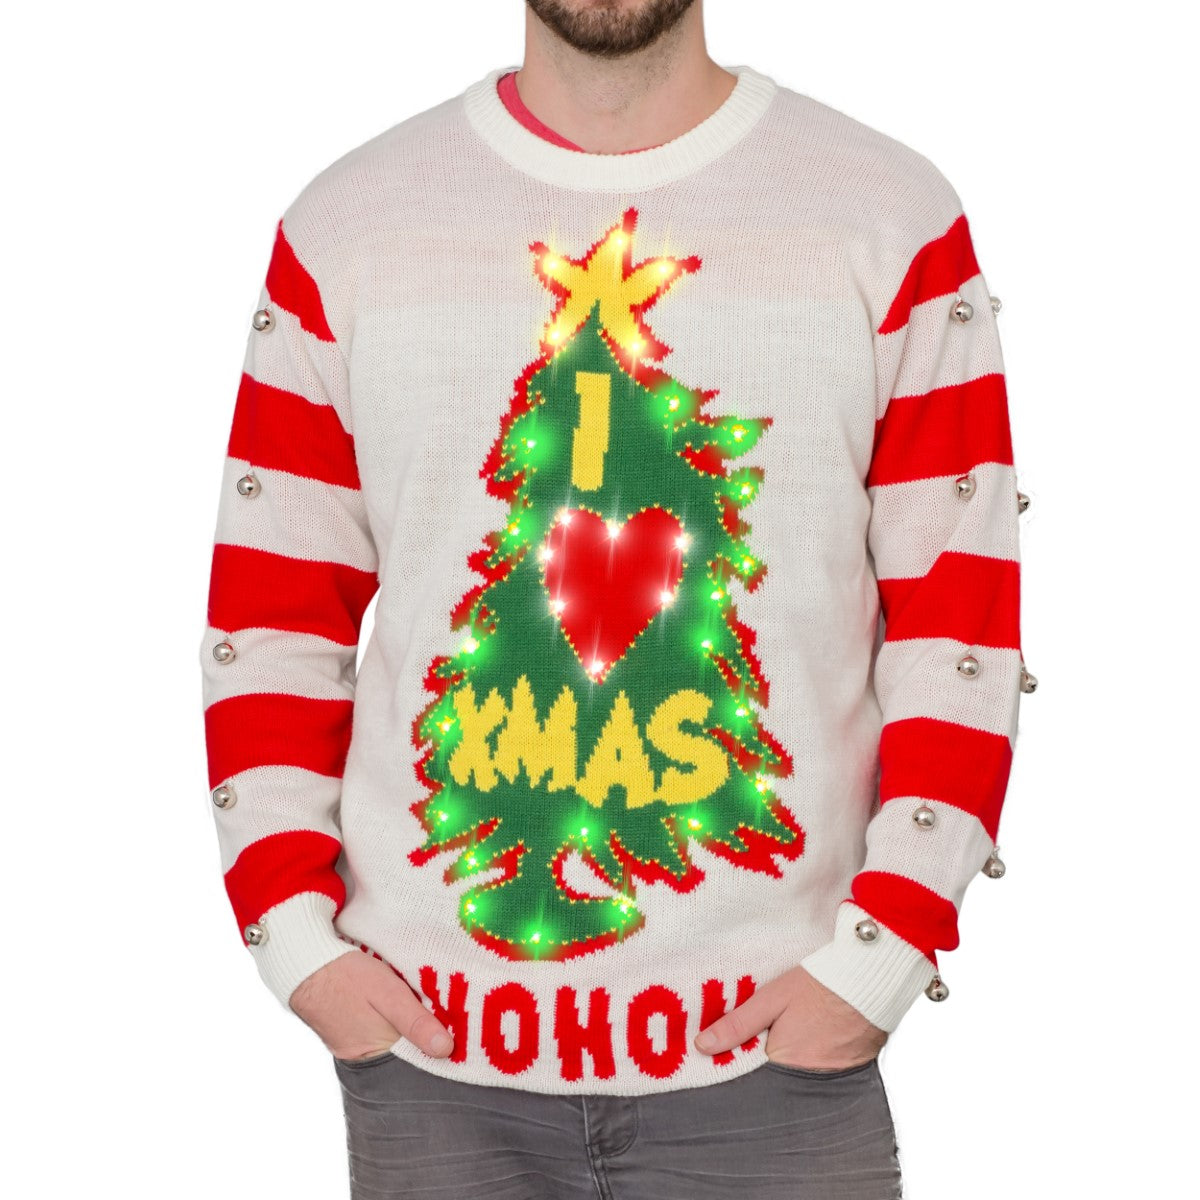 I Love Xmas Hohoho Light Up Led Christmas Tree And Star Ugly Christmas Sweater